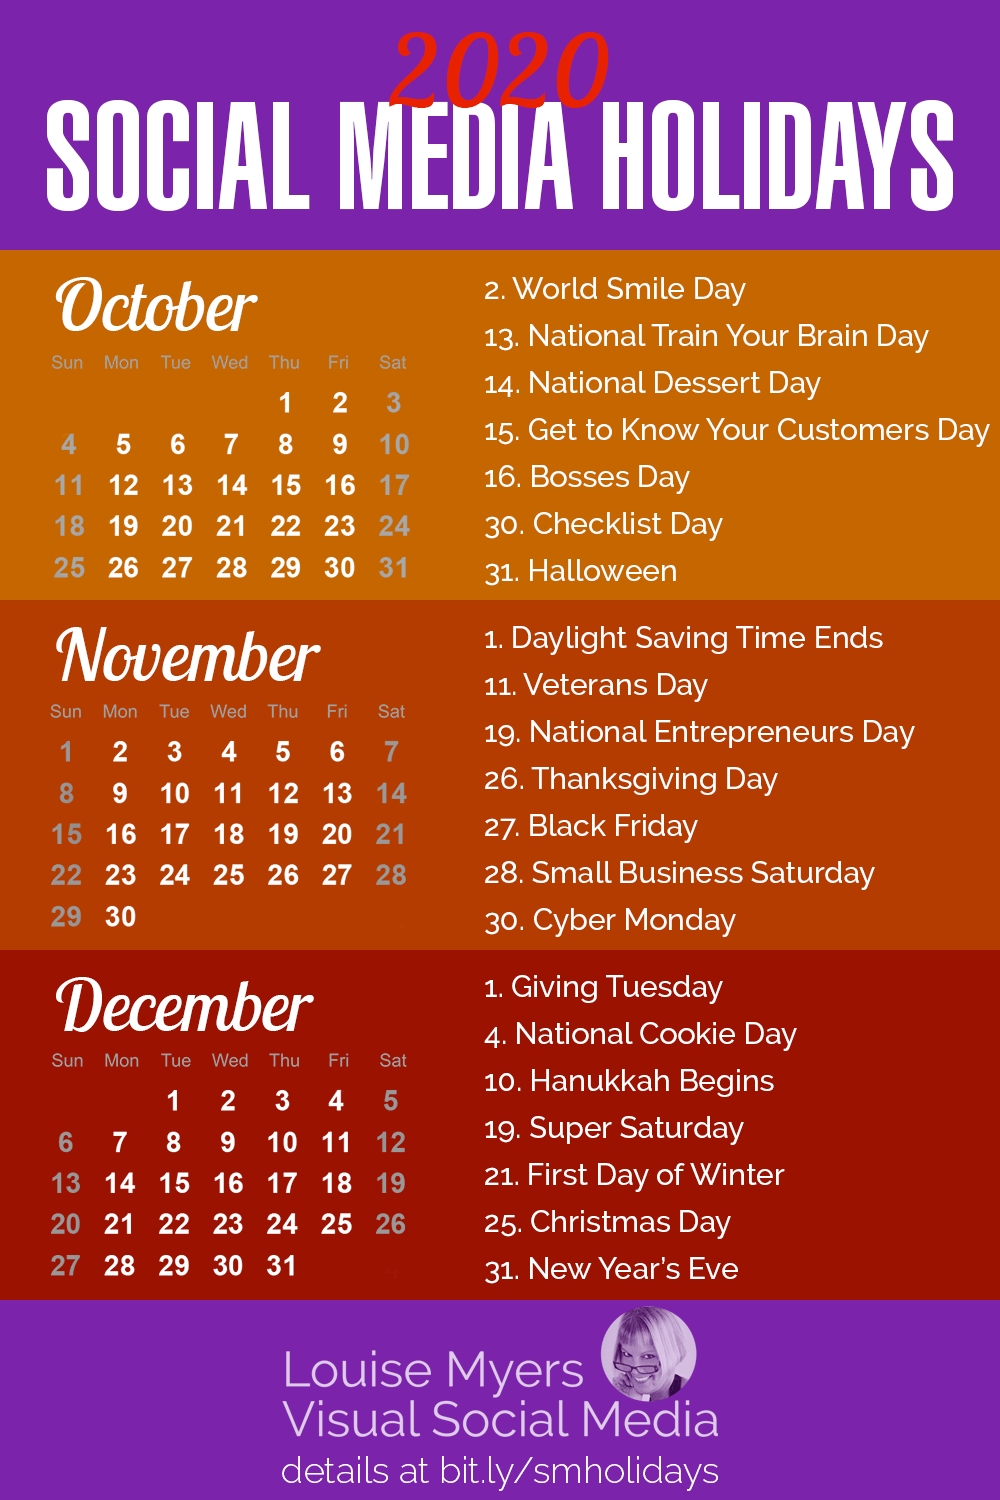 84 Social Media Holidays You Need In 2020: Indispensable! with 2020 Calendar With Special Days